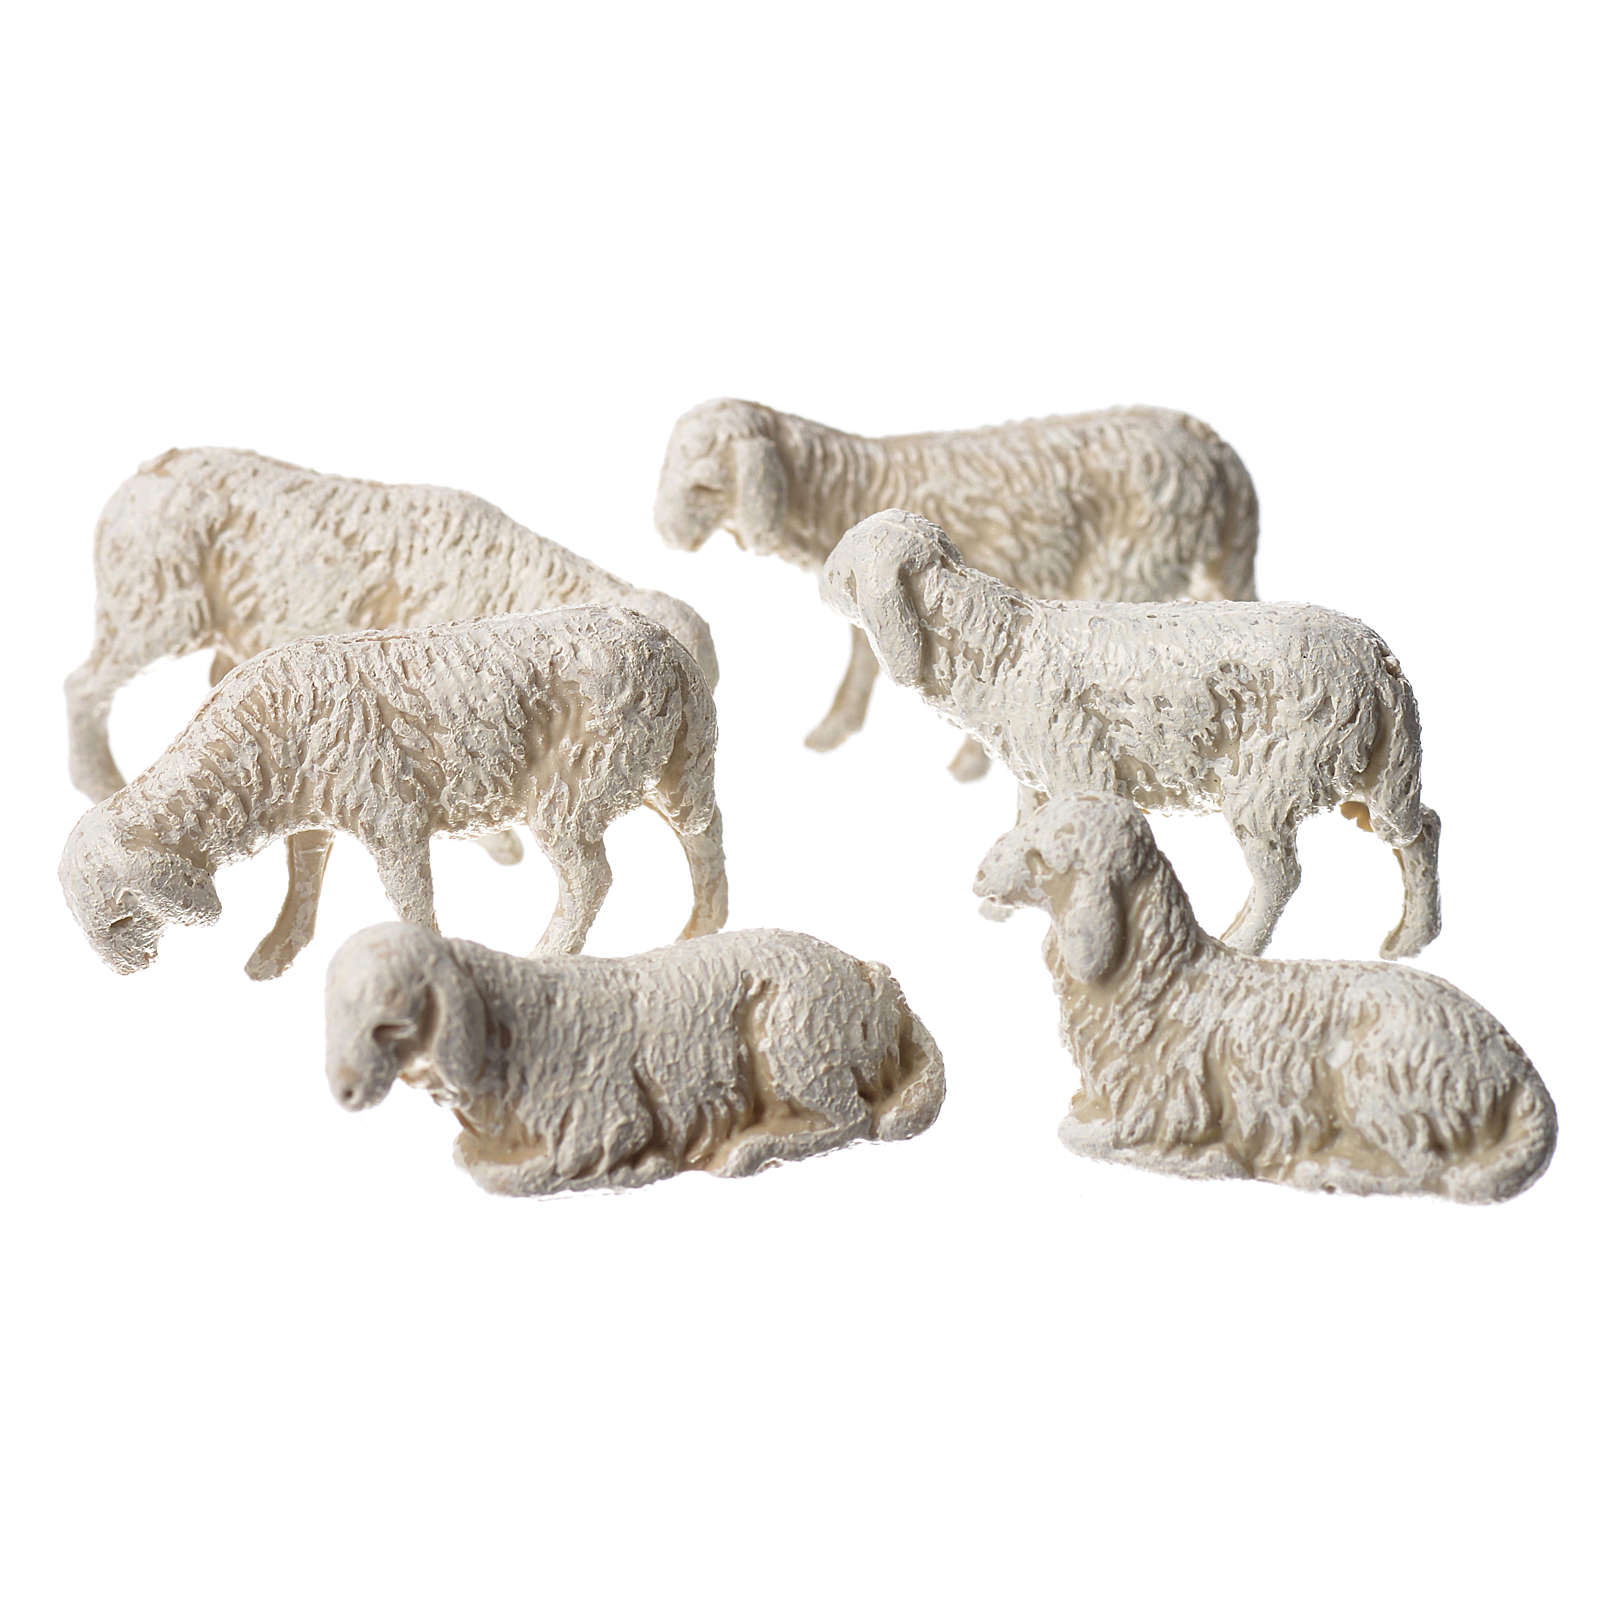 Nativity Scene sheep by Moranduzzo 3.5cm, 6 pieces 4